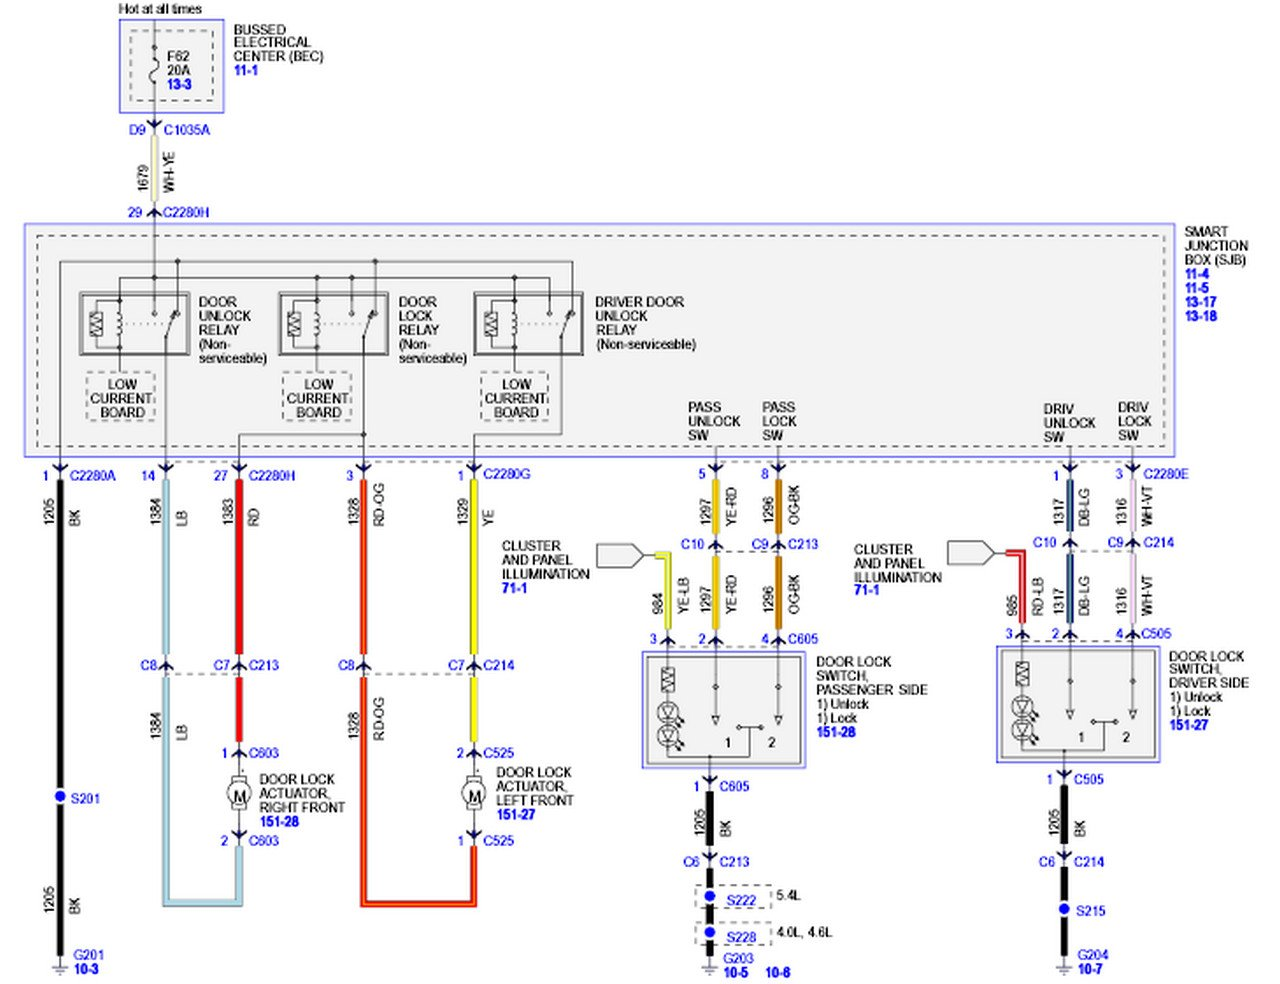 power door locks wiring diagram schematics and wiring diagrams gt 121 installation